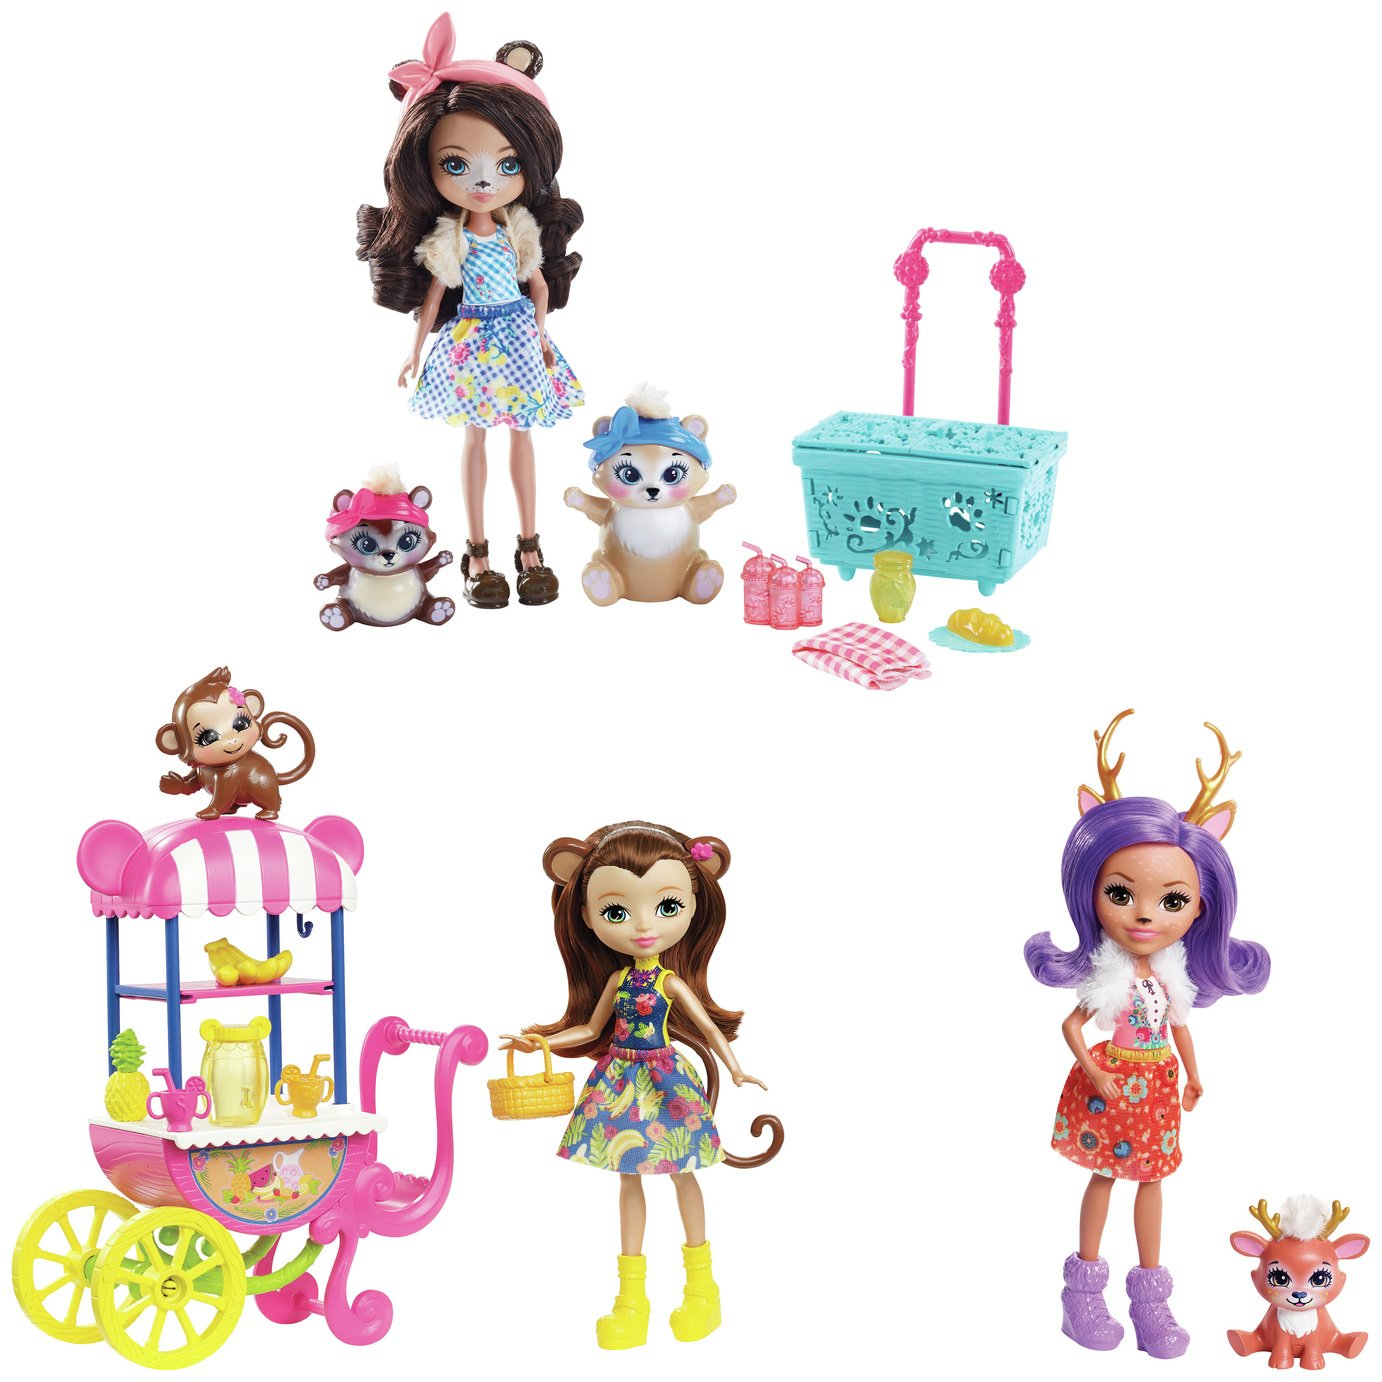 Enchantimals Picnic in the park doll 3-pack & Playset